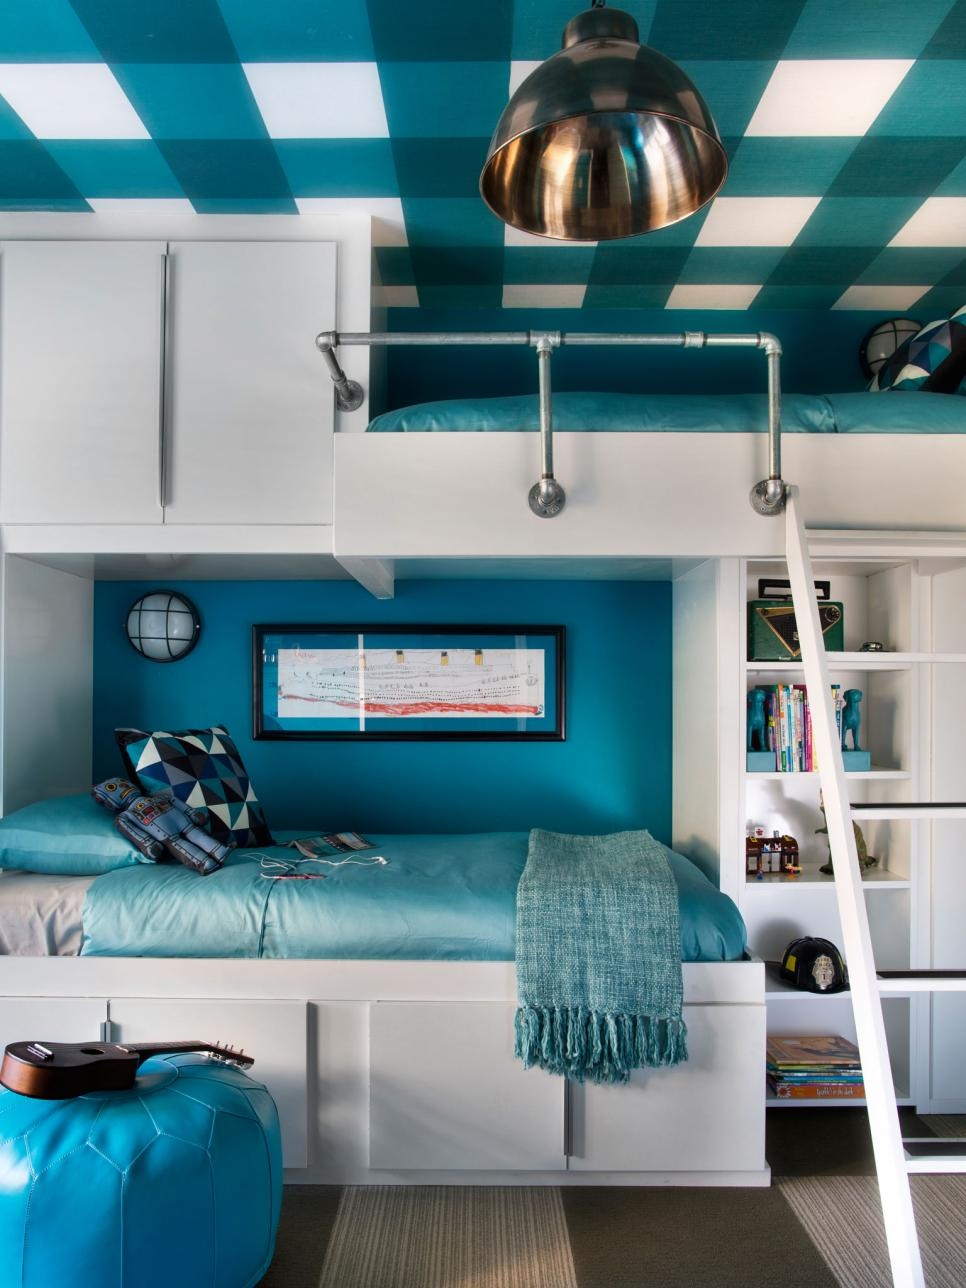 Kids 39 bunk bed and bunkroom design ideas diy - Creative deck storage ideas integrating storage to your outdoor room ...